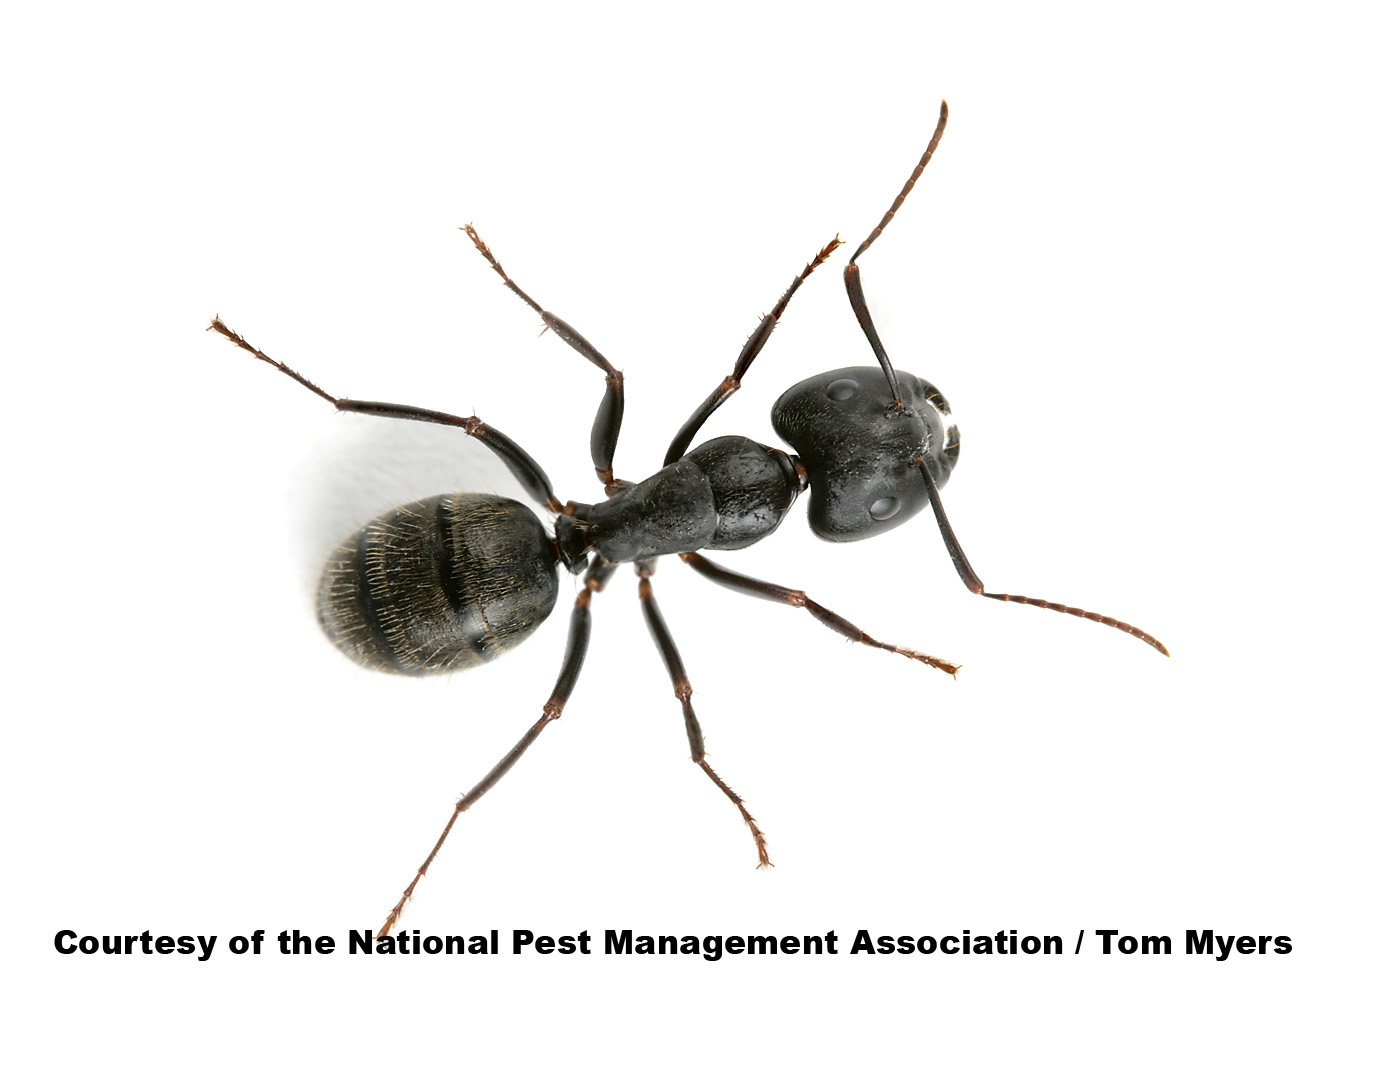 Carpenter Ants. Ants   Facts About Ants   Types of Ants   PestWorldforKids org